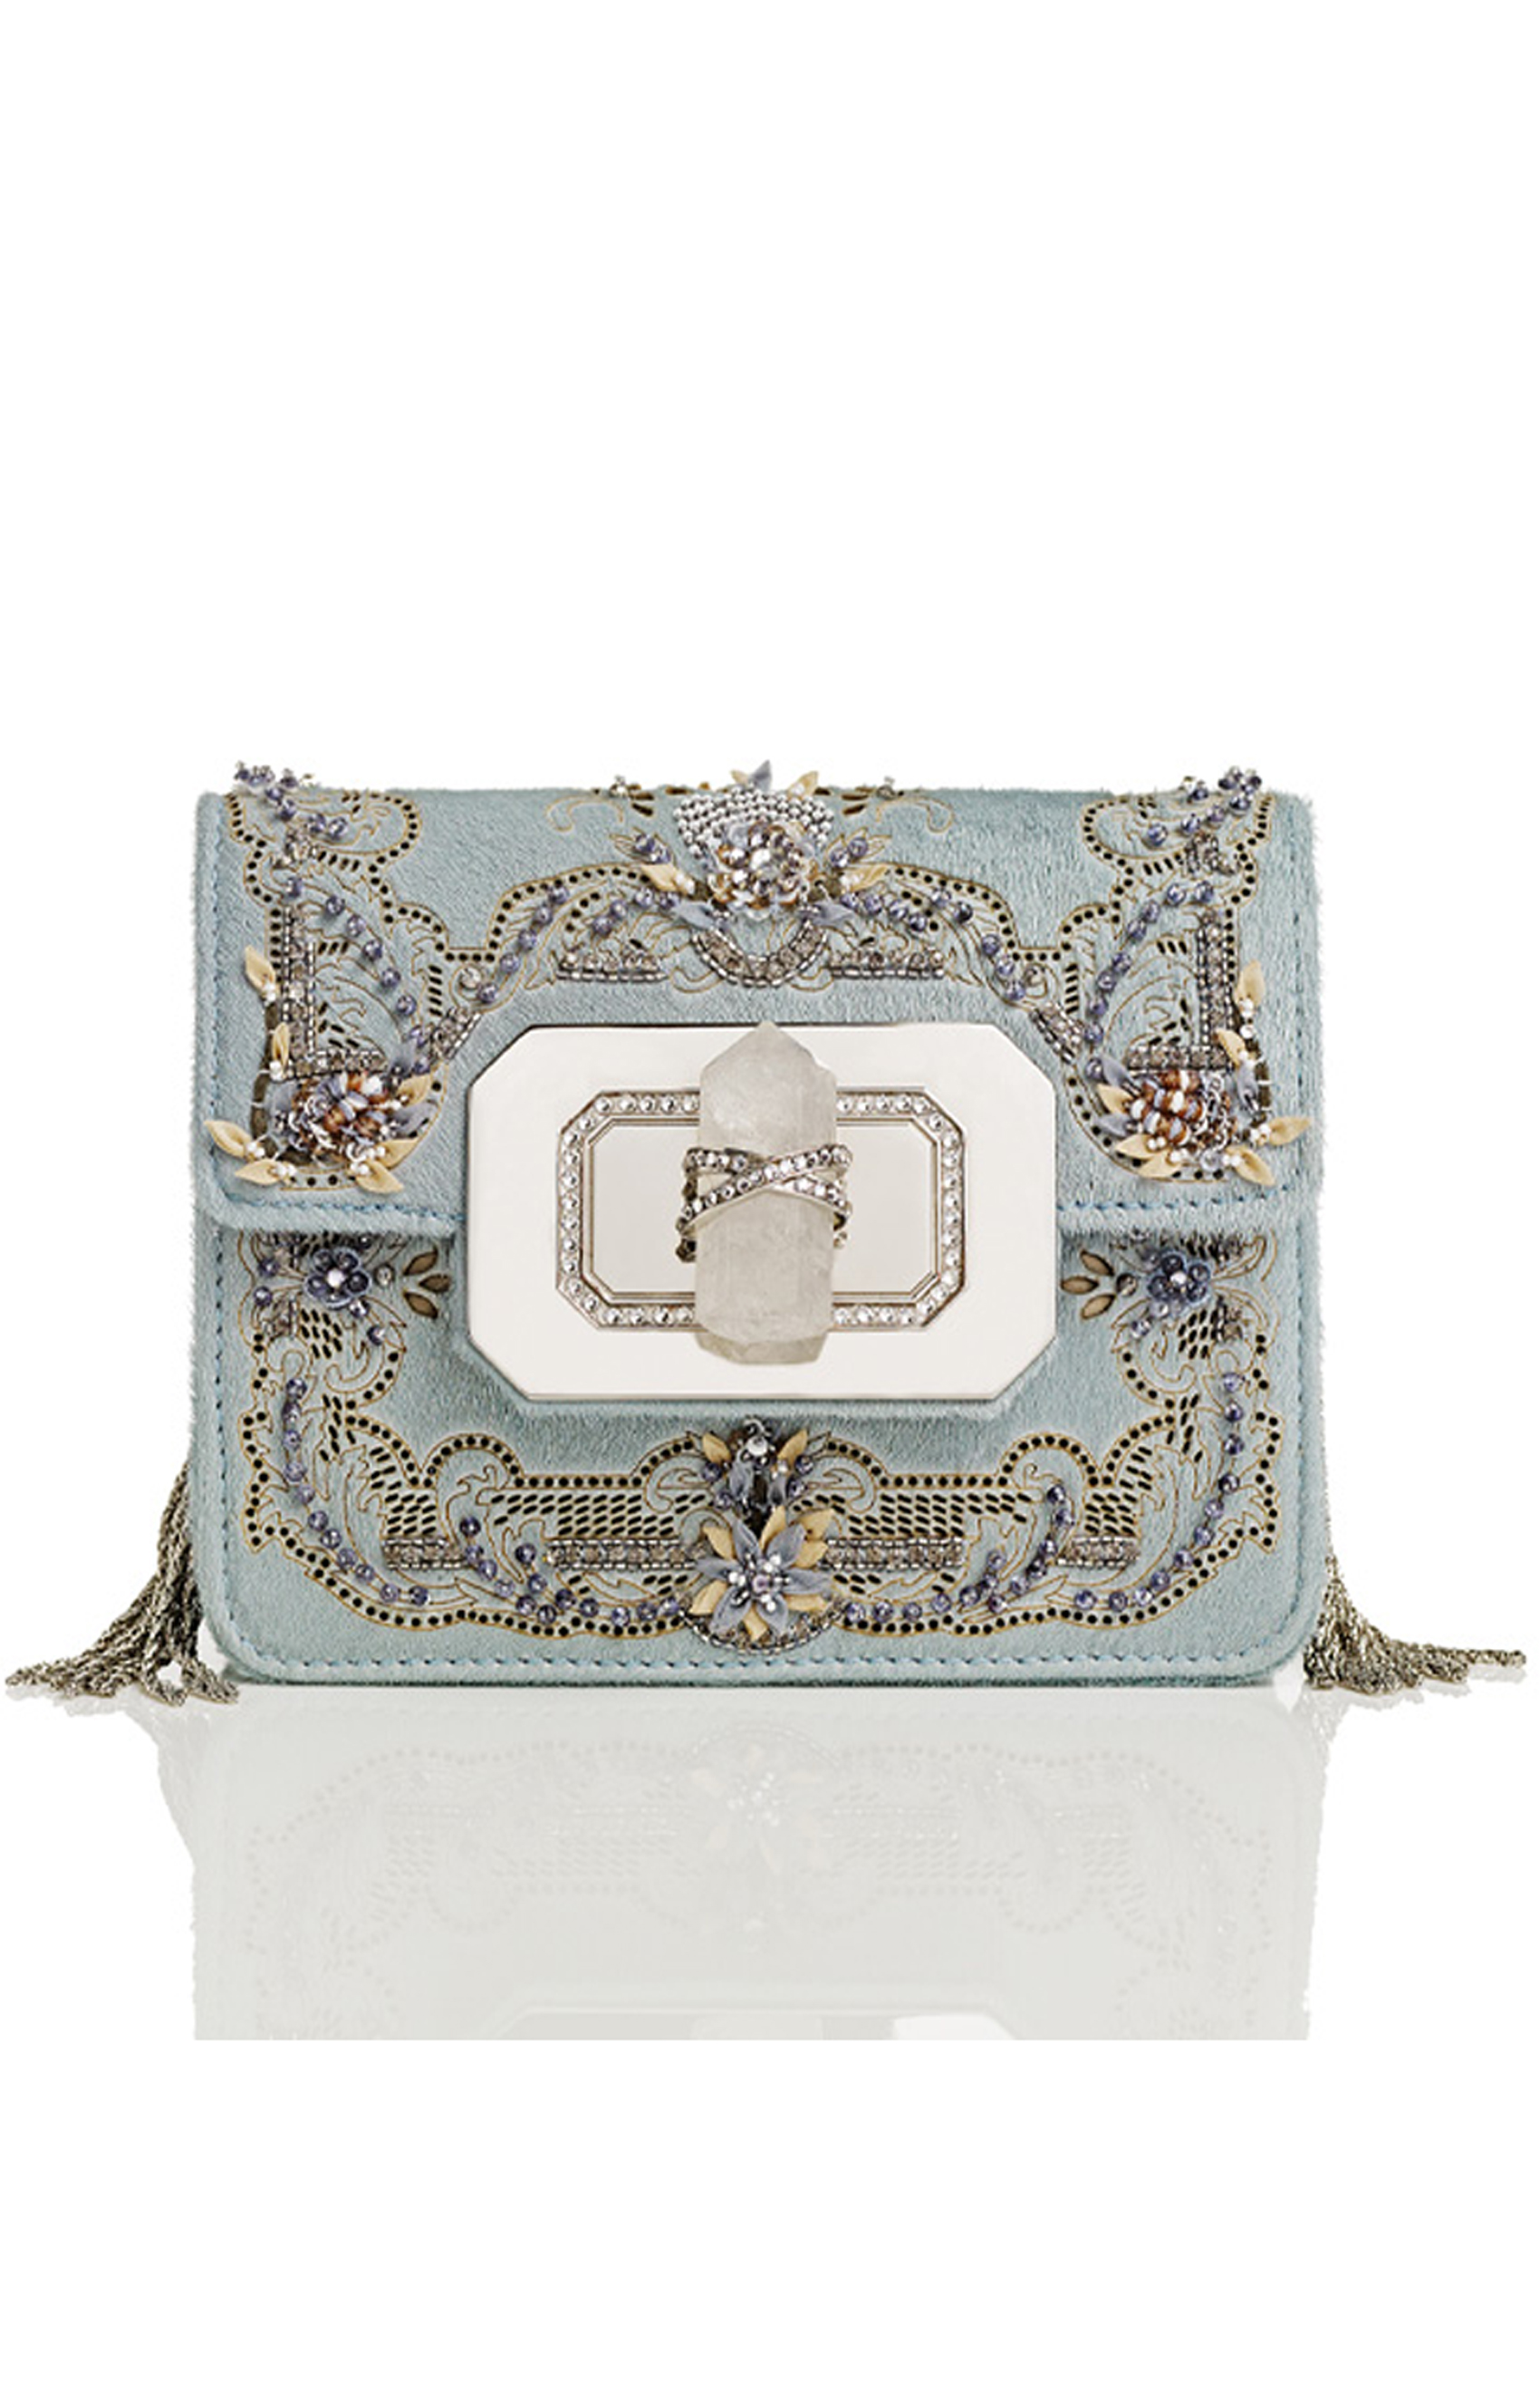 Marchesa <br>Handbag 13